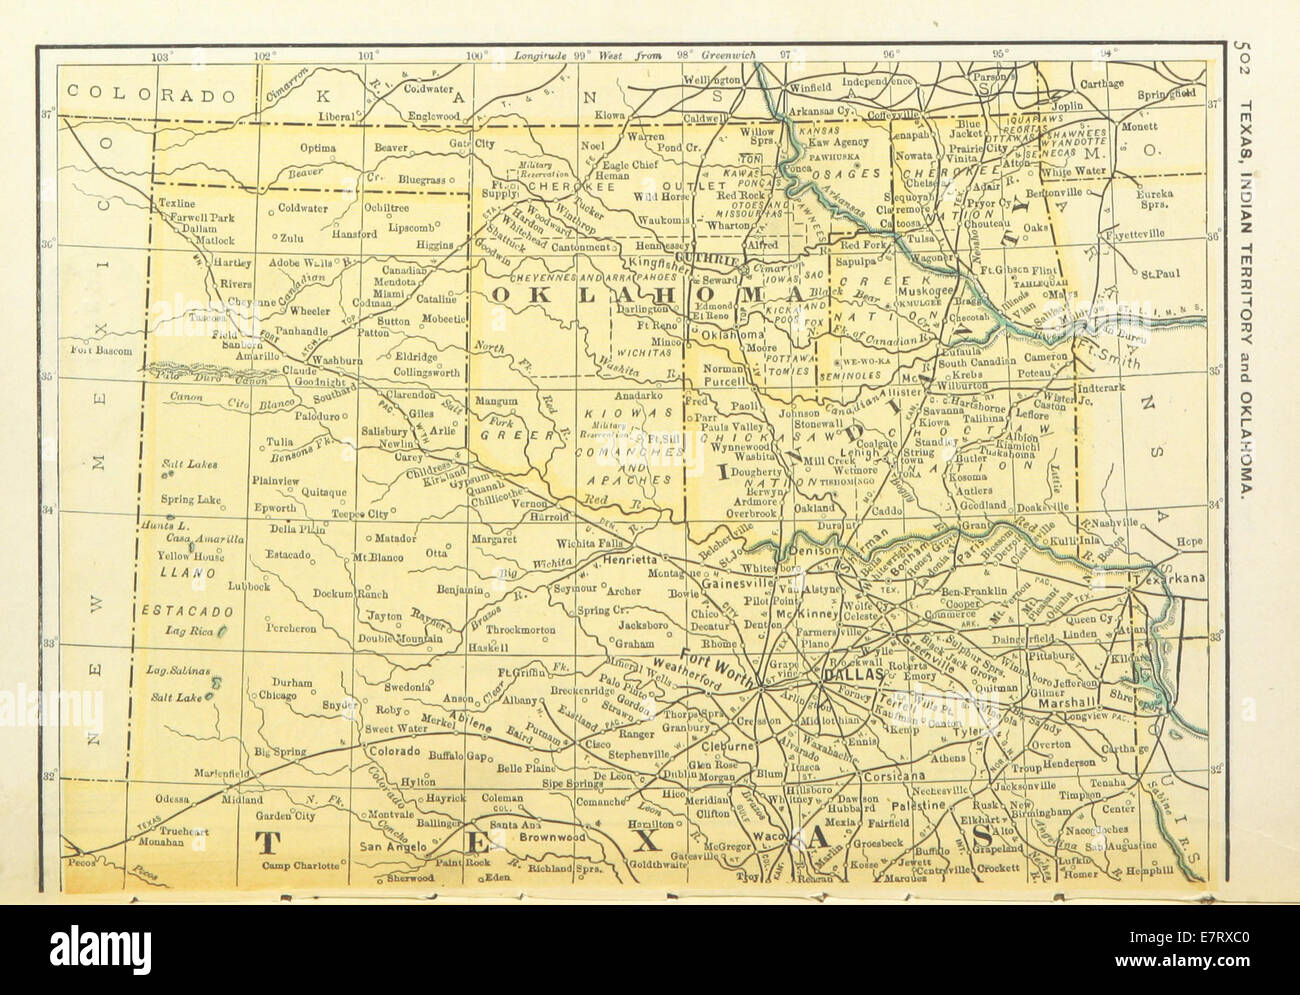 USMAPS1891 p504 MAP OF TEXAS OKLAHOMA AND INDIAN TERRITORY